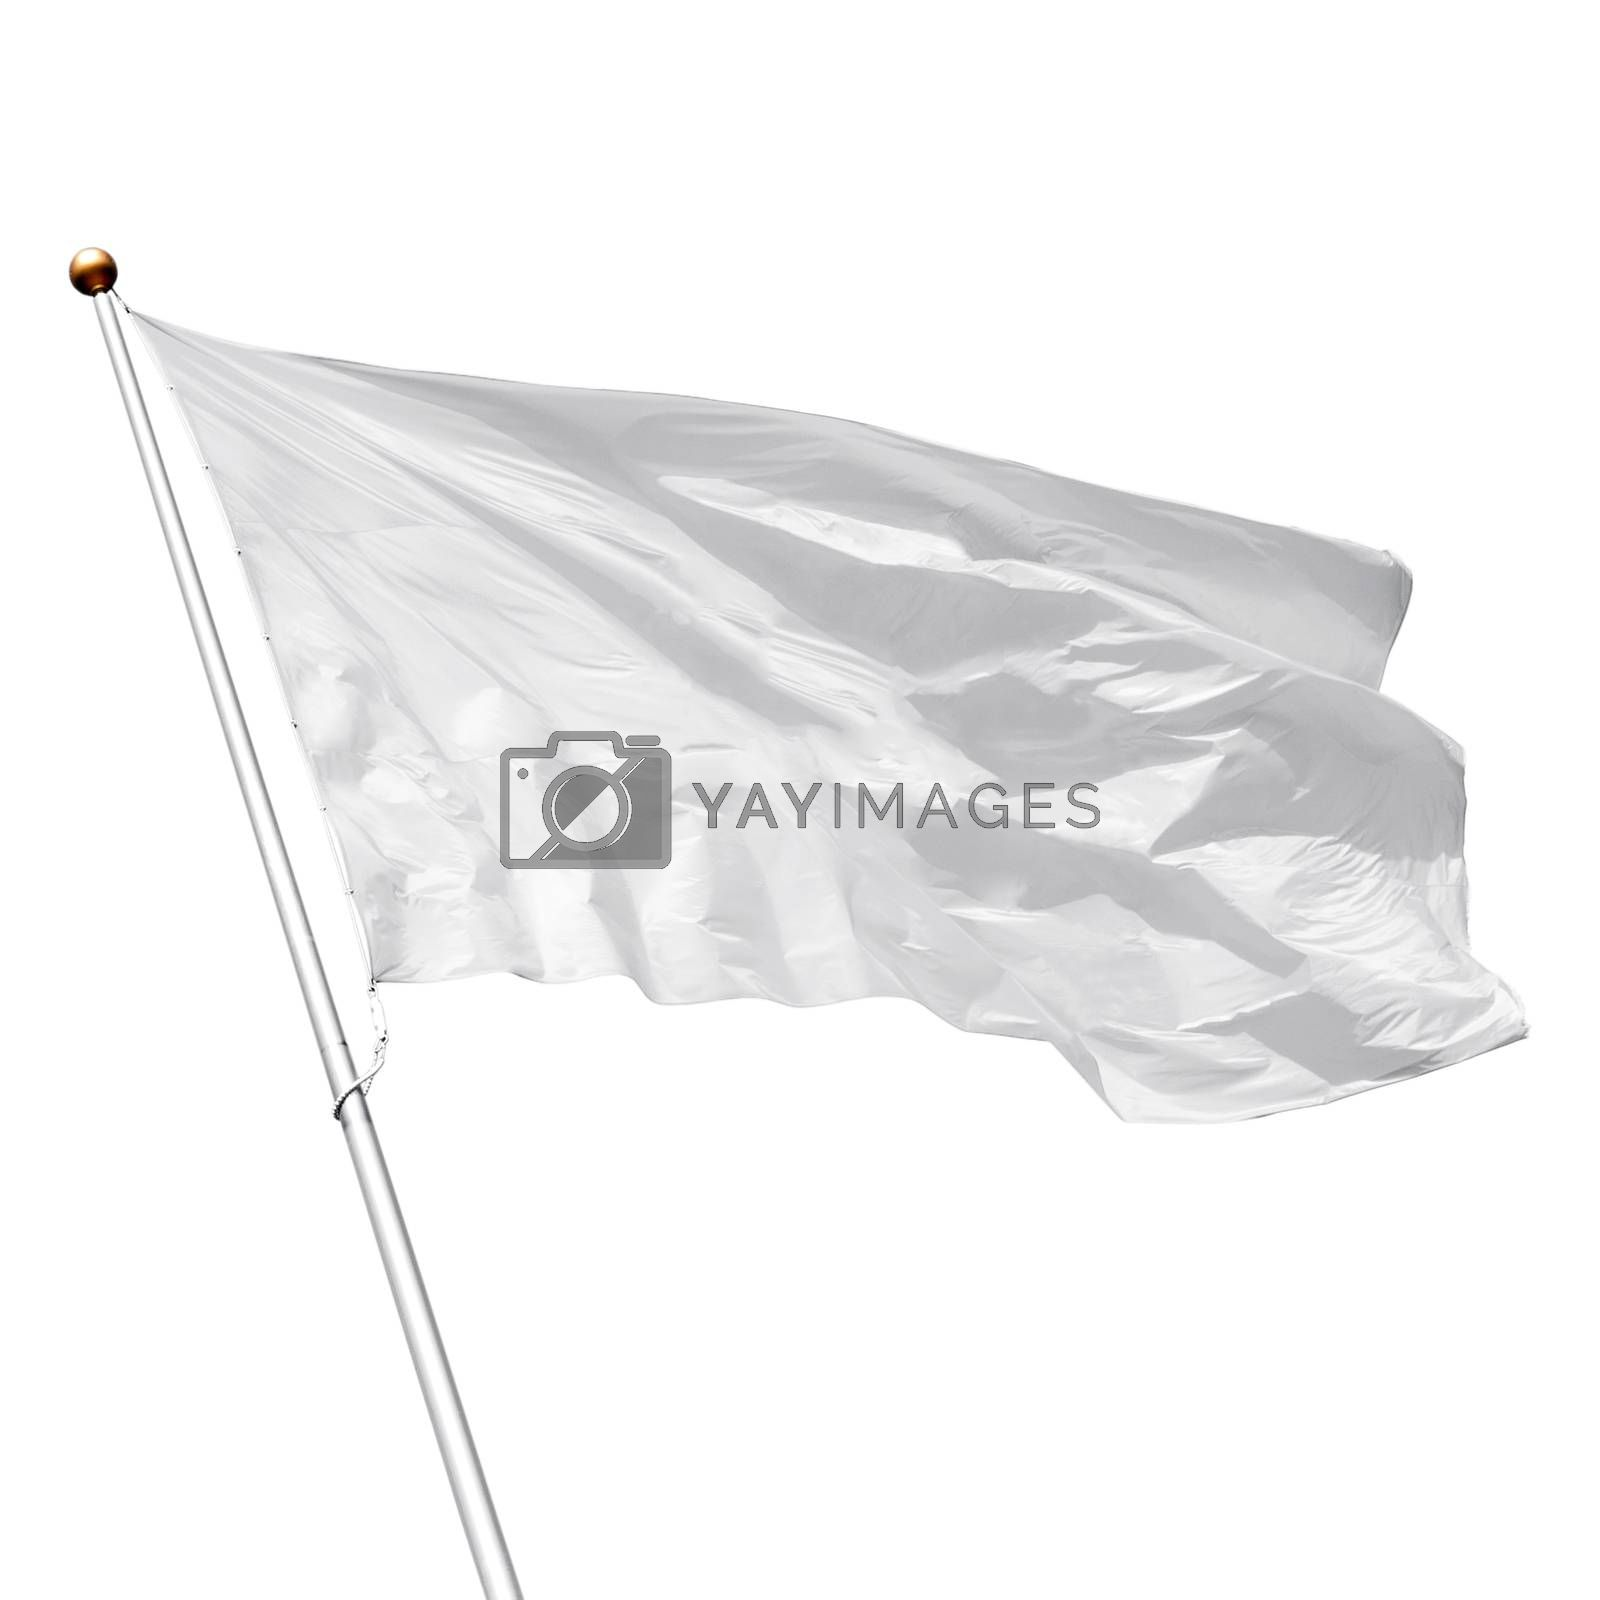 White flag waving in the wind on white background. Perfect mockup to add any logo, symbol or sign